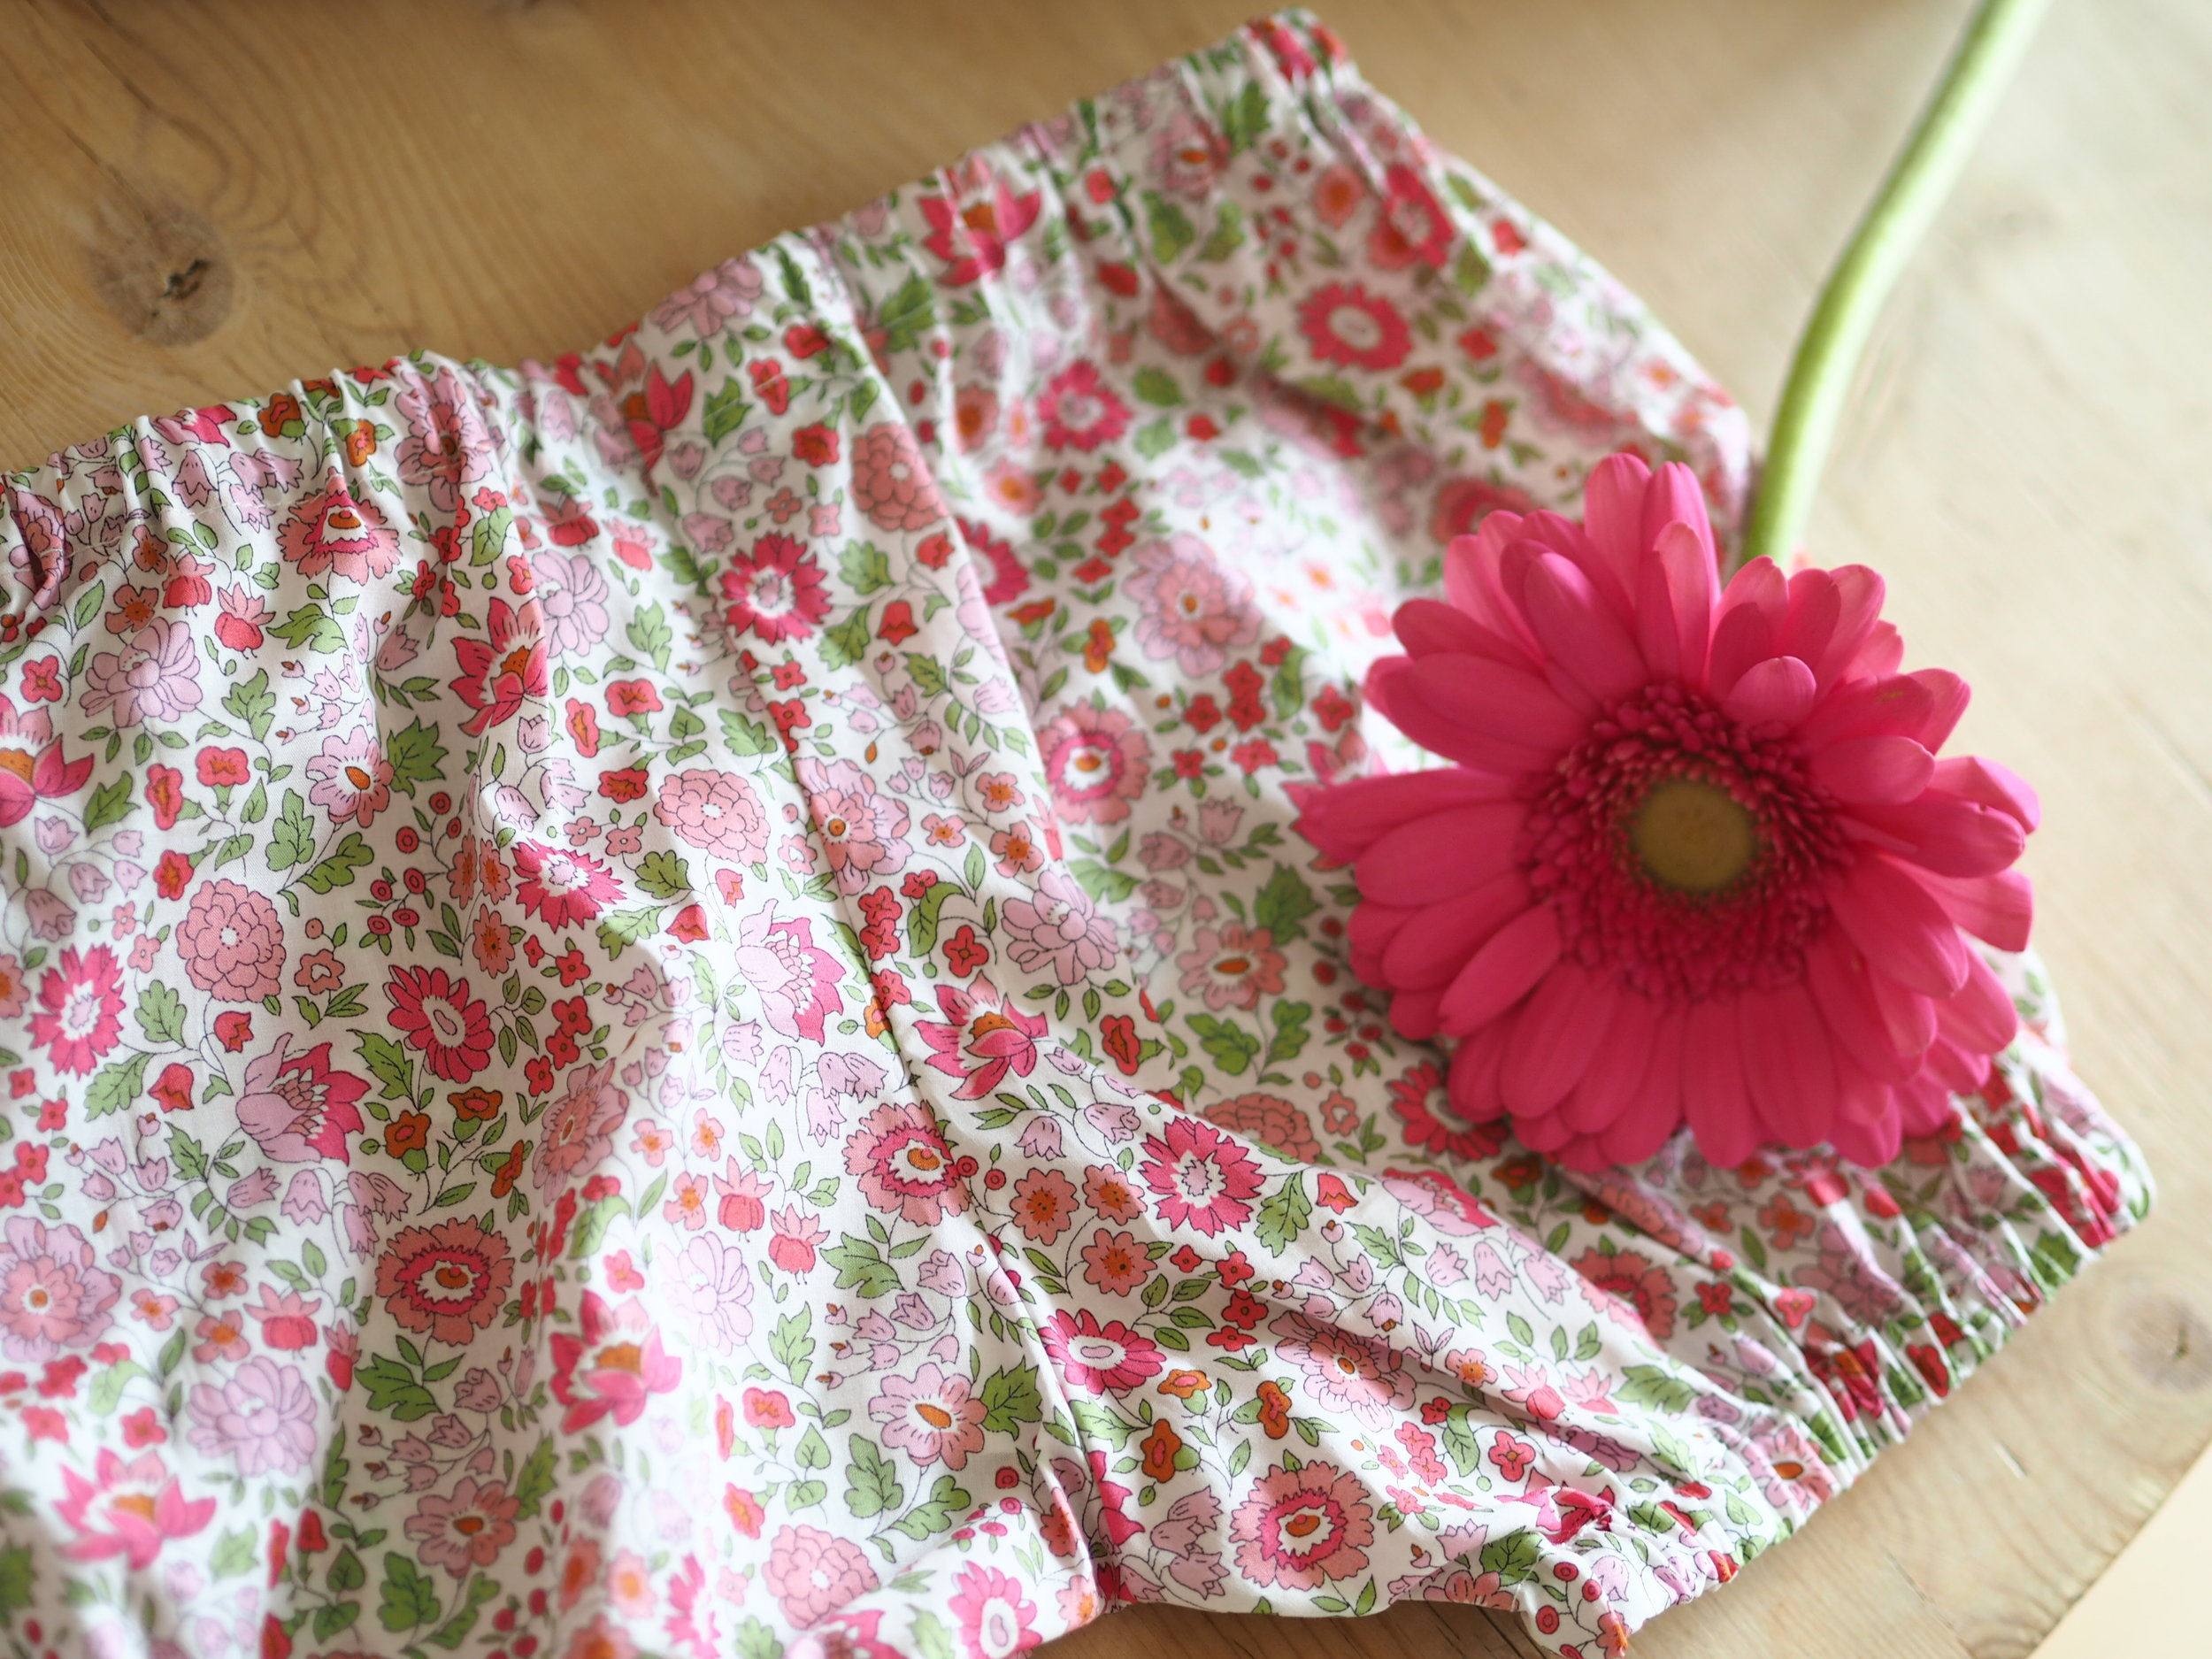 Made by Jay, Bloomers. We have age 6-12 months. Tap image to shop.